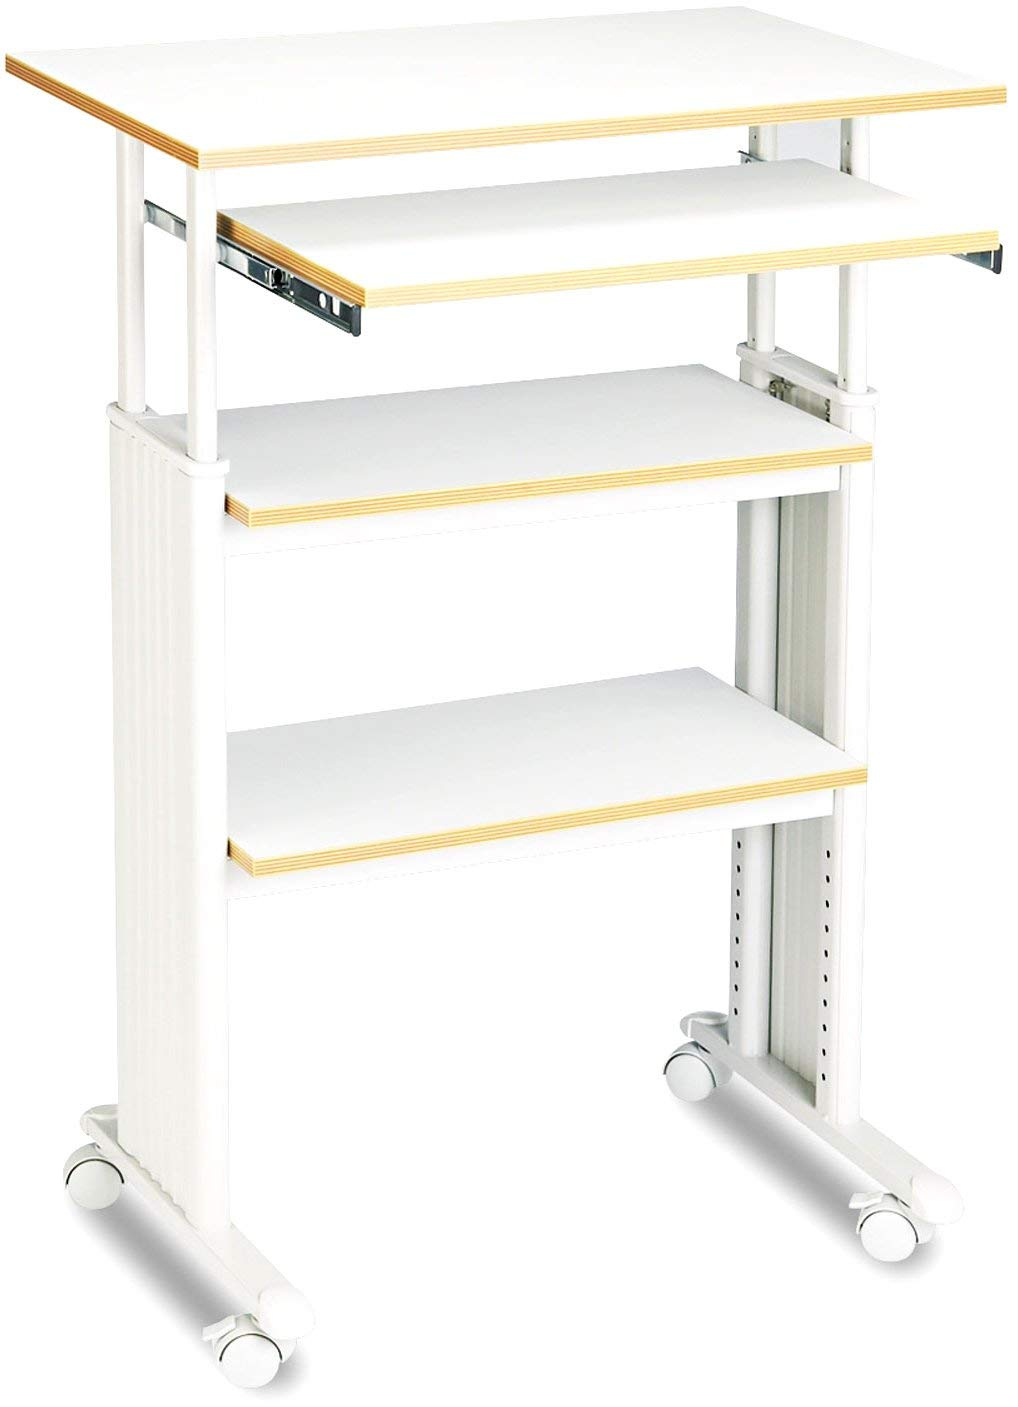 Safco Products 1929GR Muv 35-49'' H Stand-Up Desk Adjustable Height Computer Workstation with Keyboard Shelf, Gray